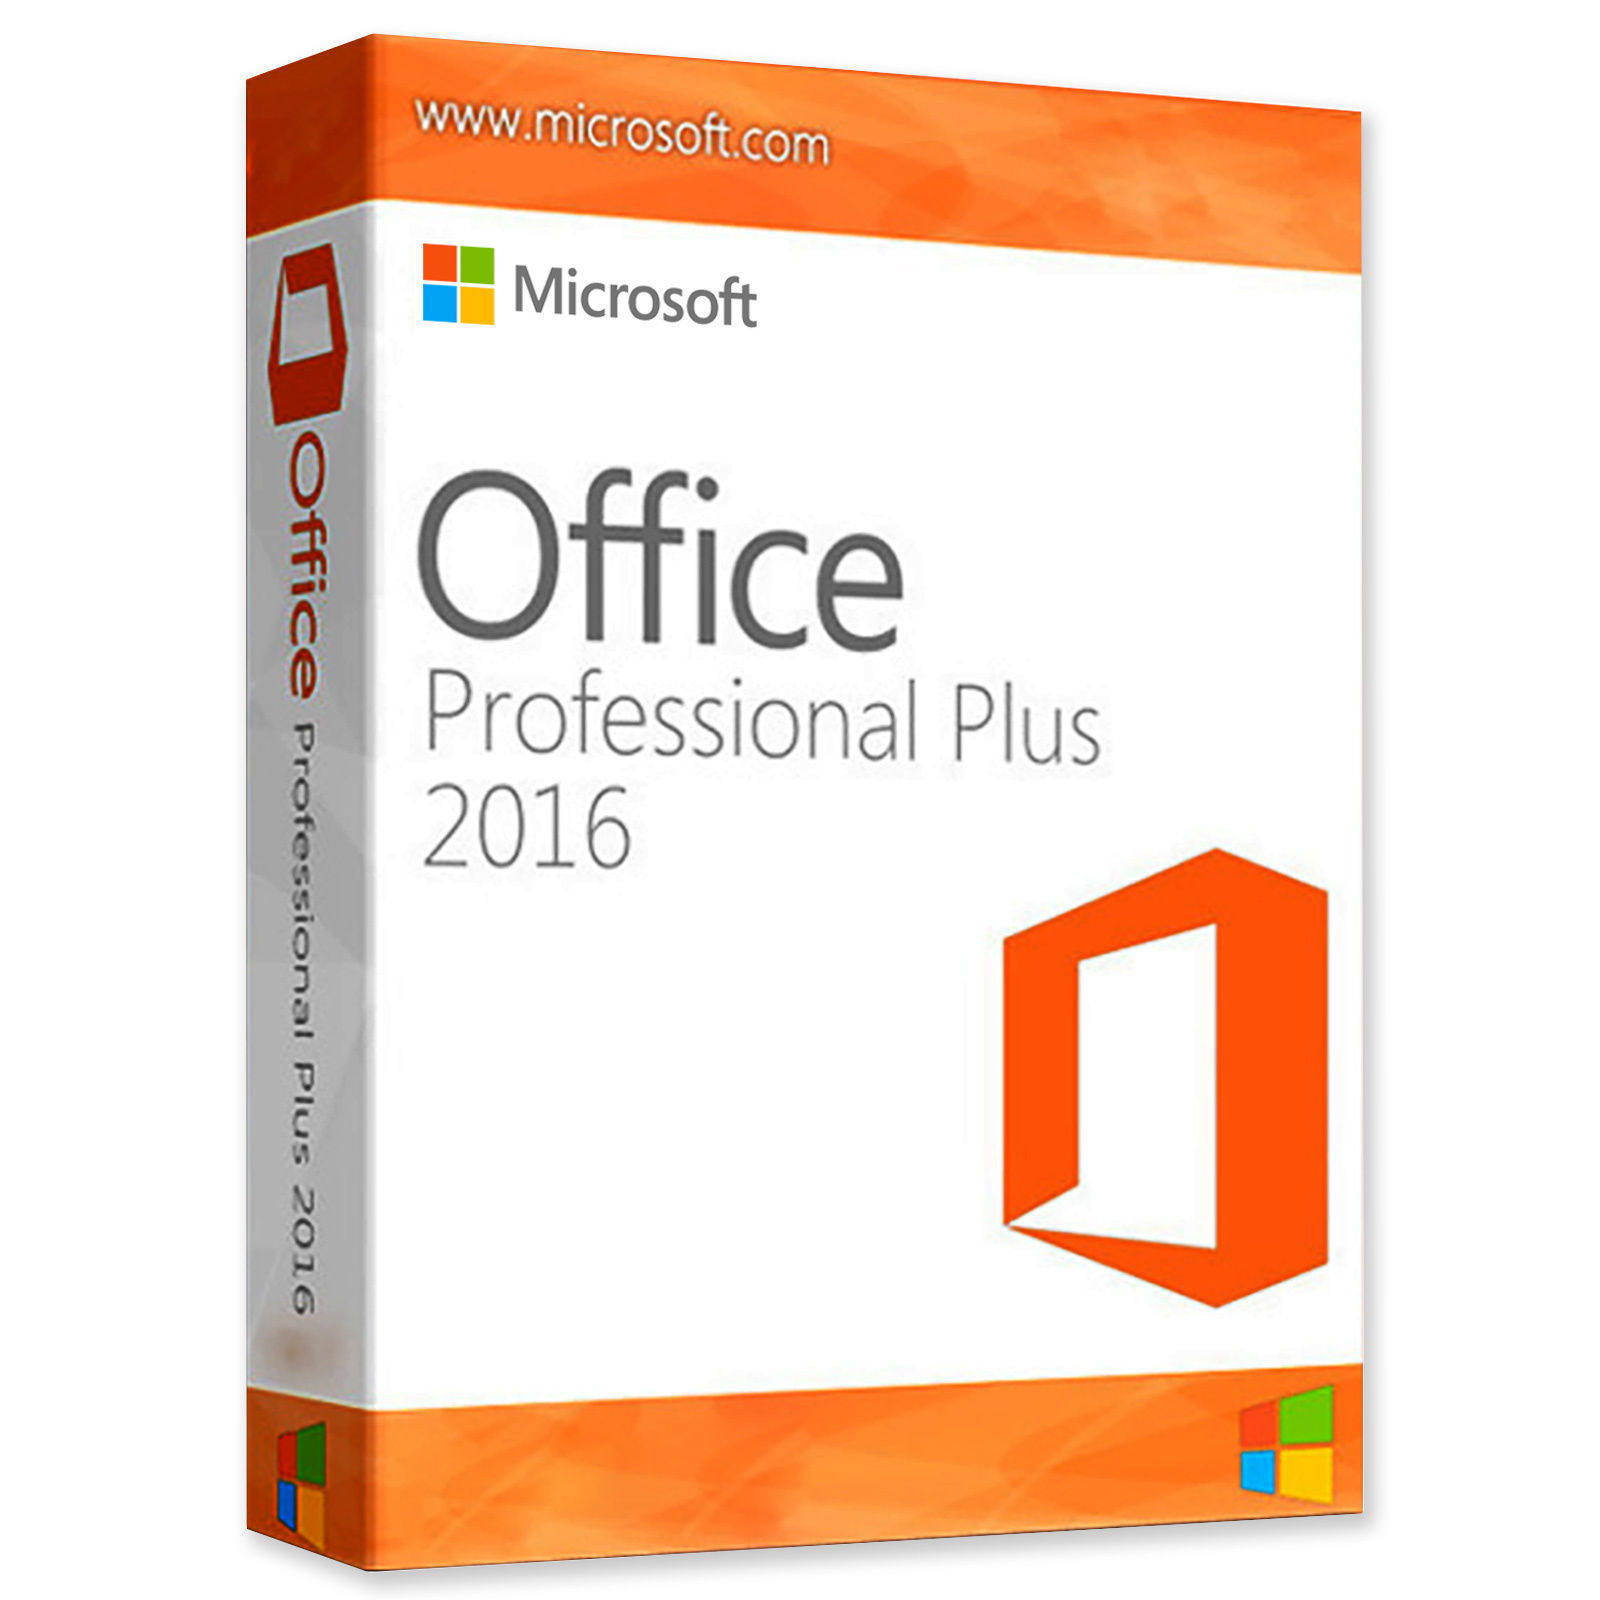 microsoft office professional plus 2016 silent install